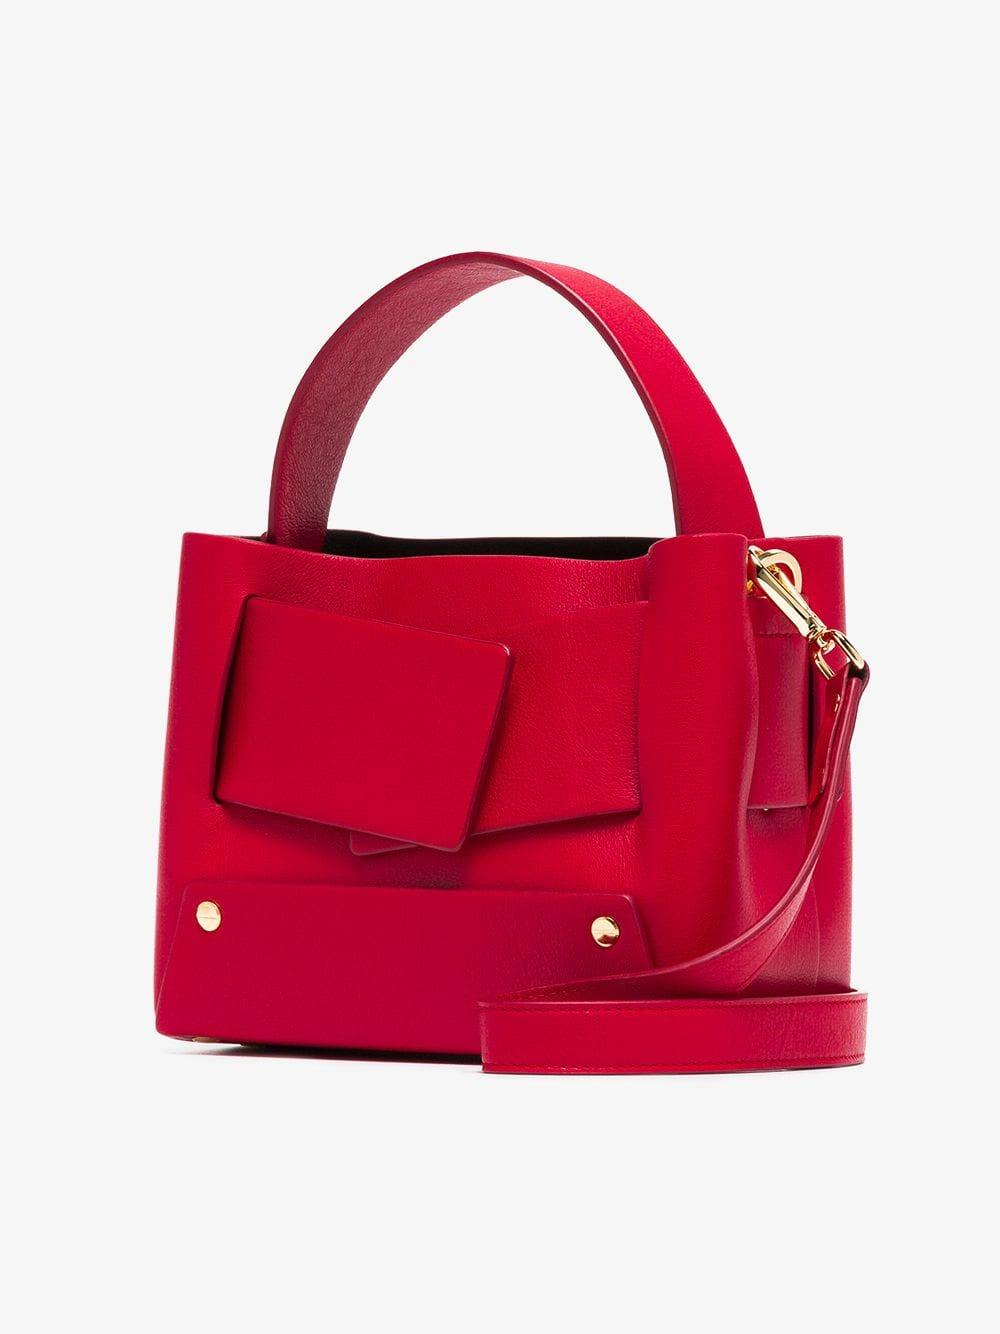 3e00462a26 Yuzefi - Red Dinky Leather Tote Bag - Lyst. View fullscreen